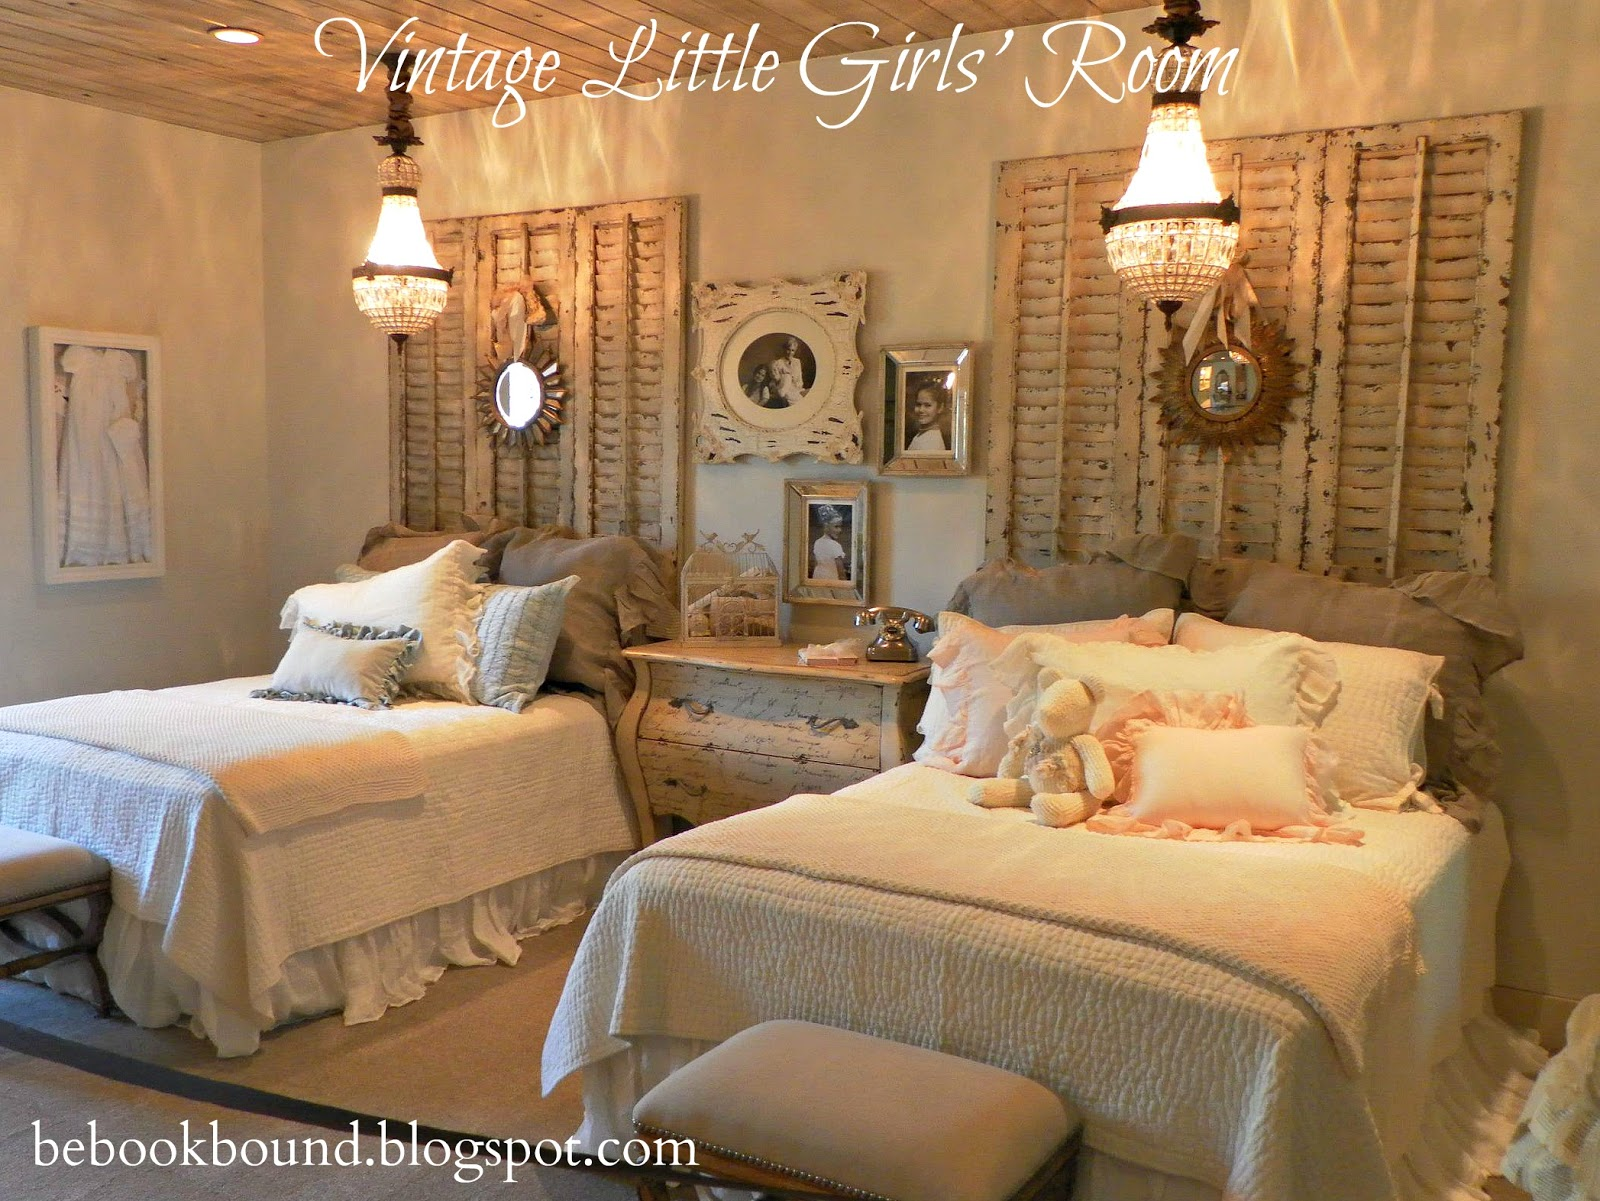 Be book bound little house on the prairie a vintage bedroom for little girls - Vintage bedroom decor ideas ...